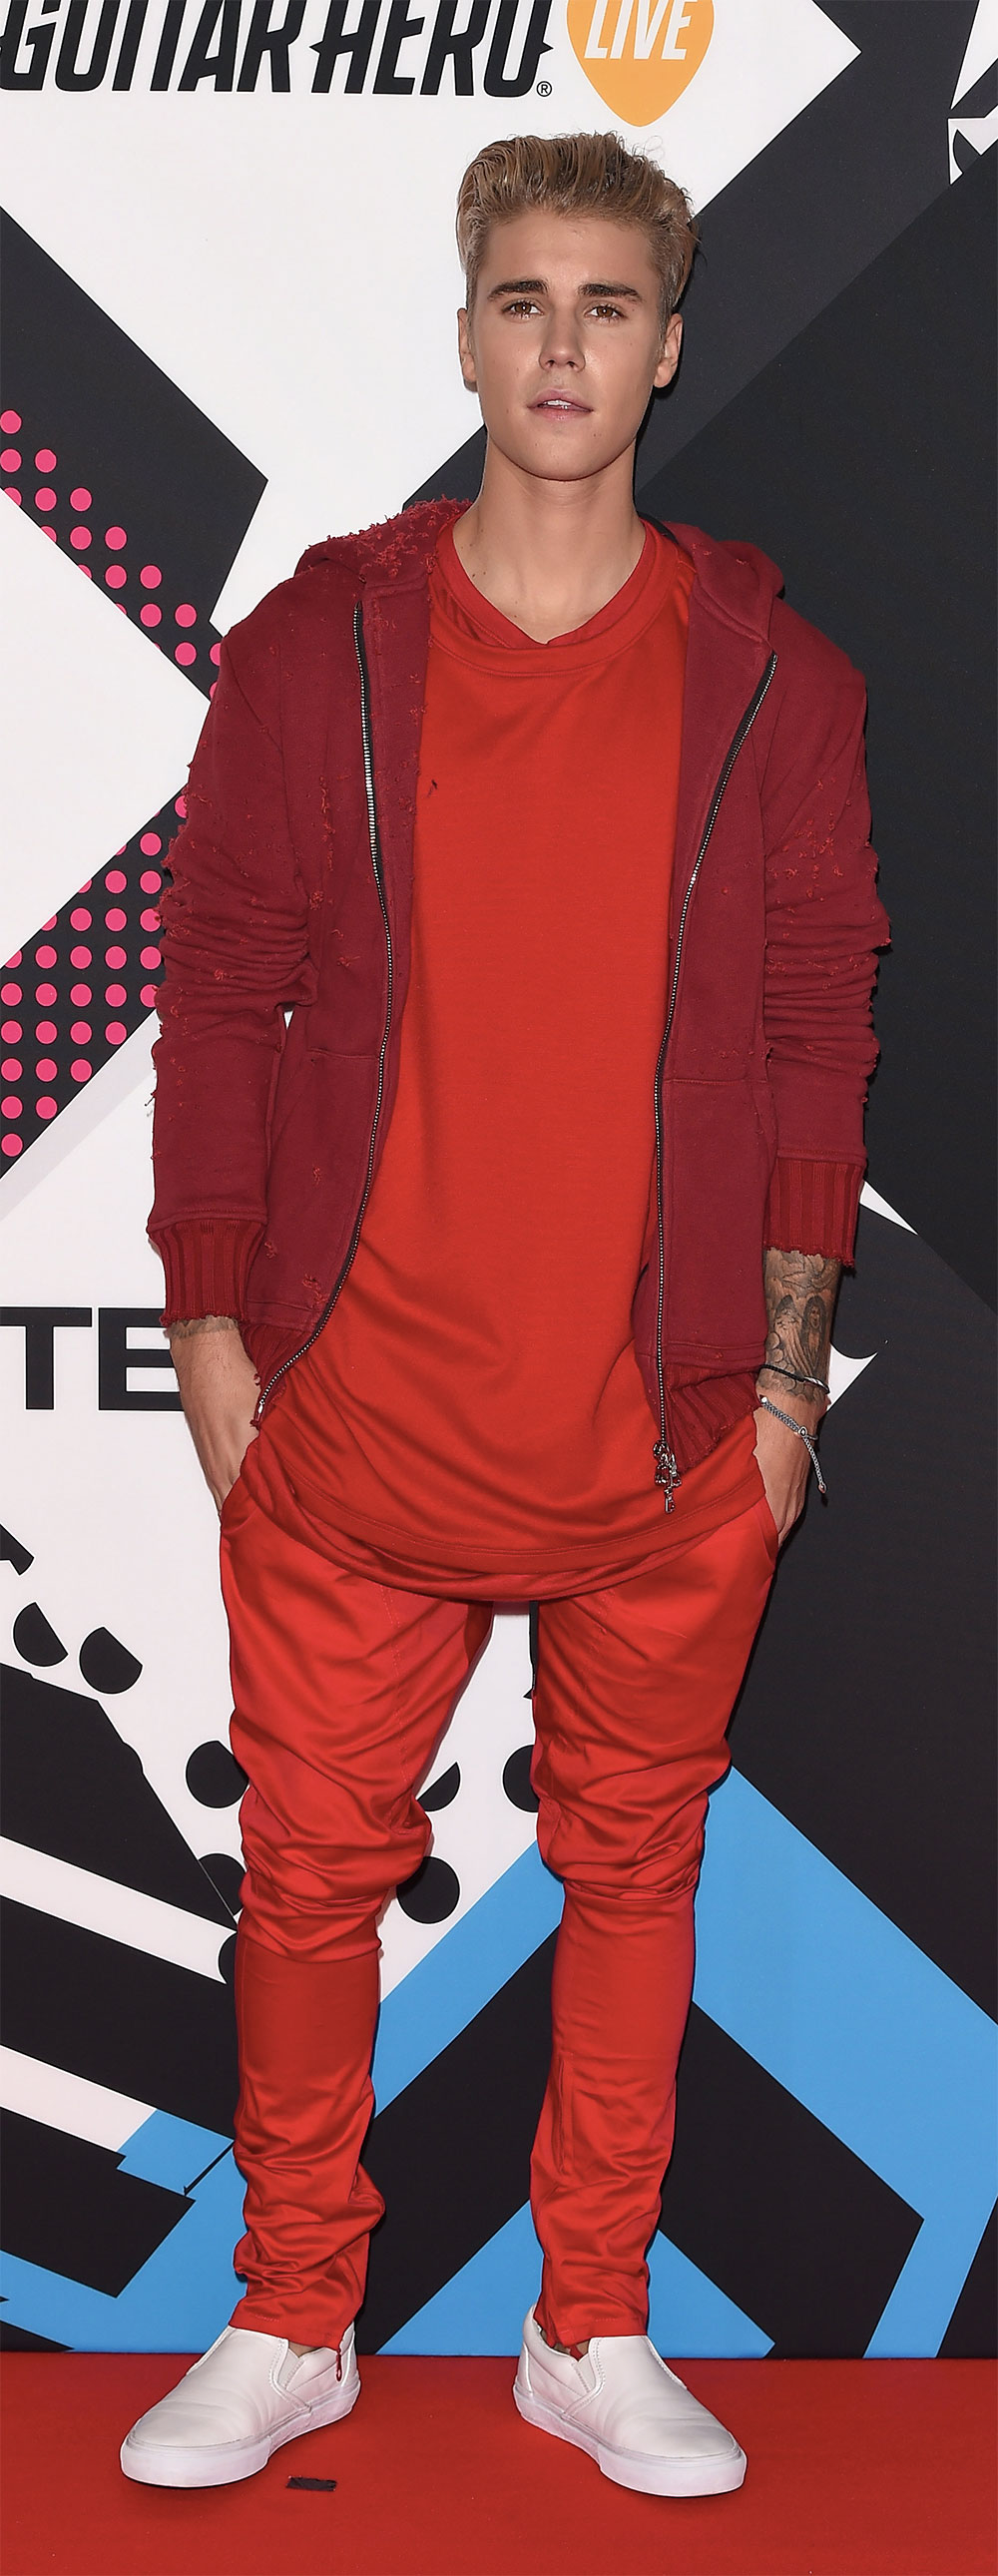 justin bieber monochrome outfit